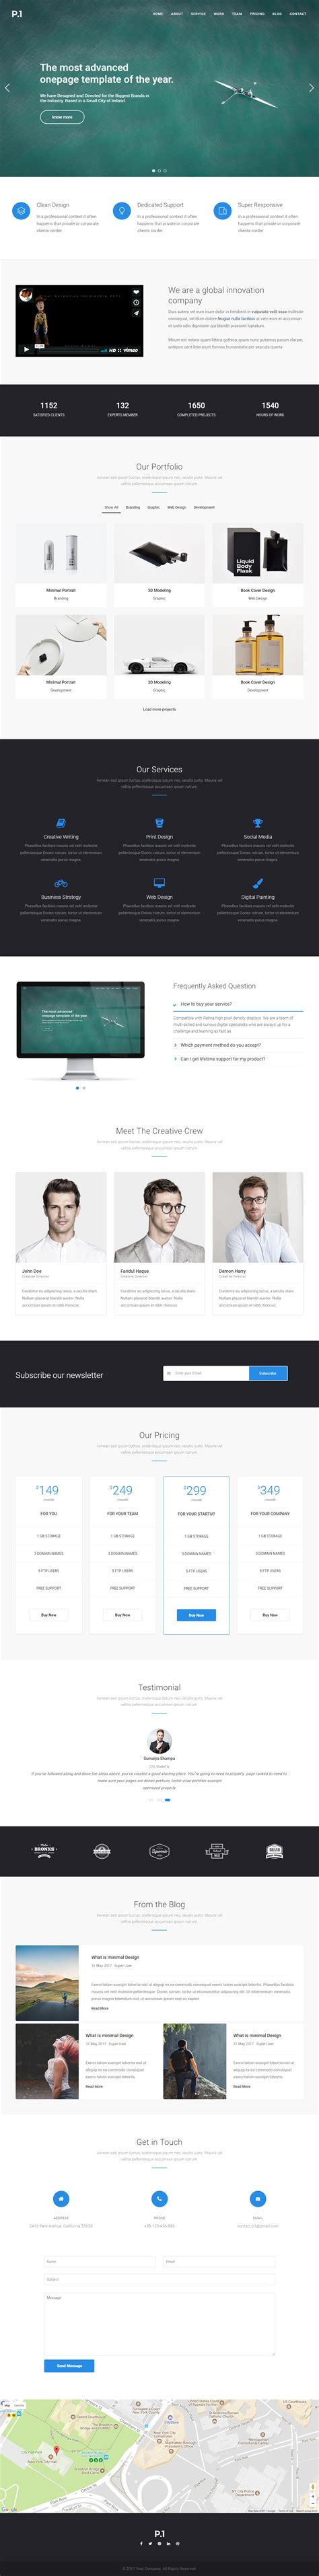 p1 premium responsive multipurpose business joomla theme